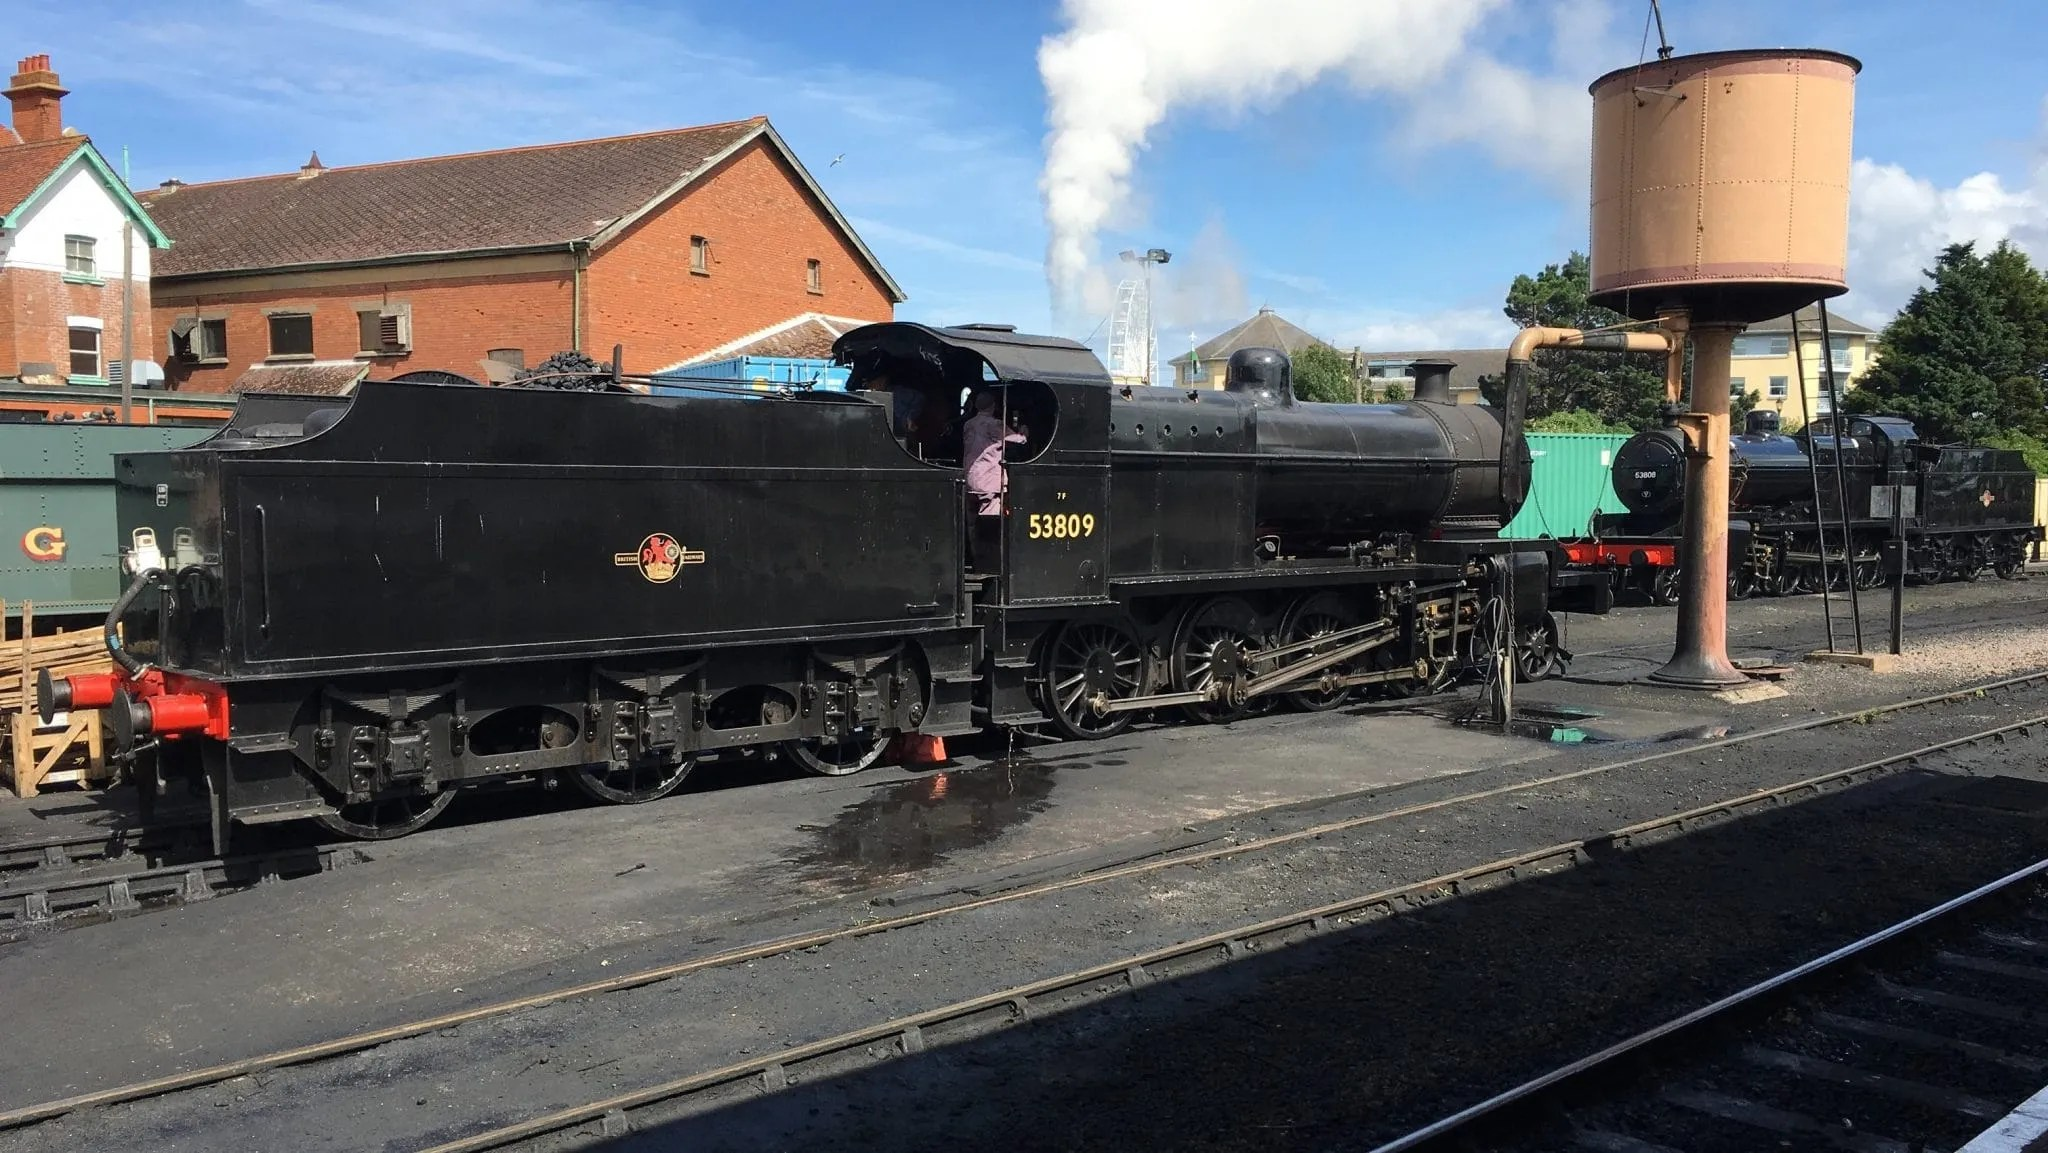 steam locomotives 53809 and 53808 at Minehead station on West Somerset Railway